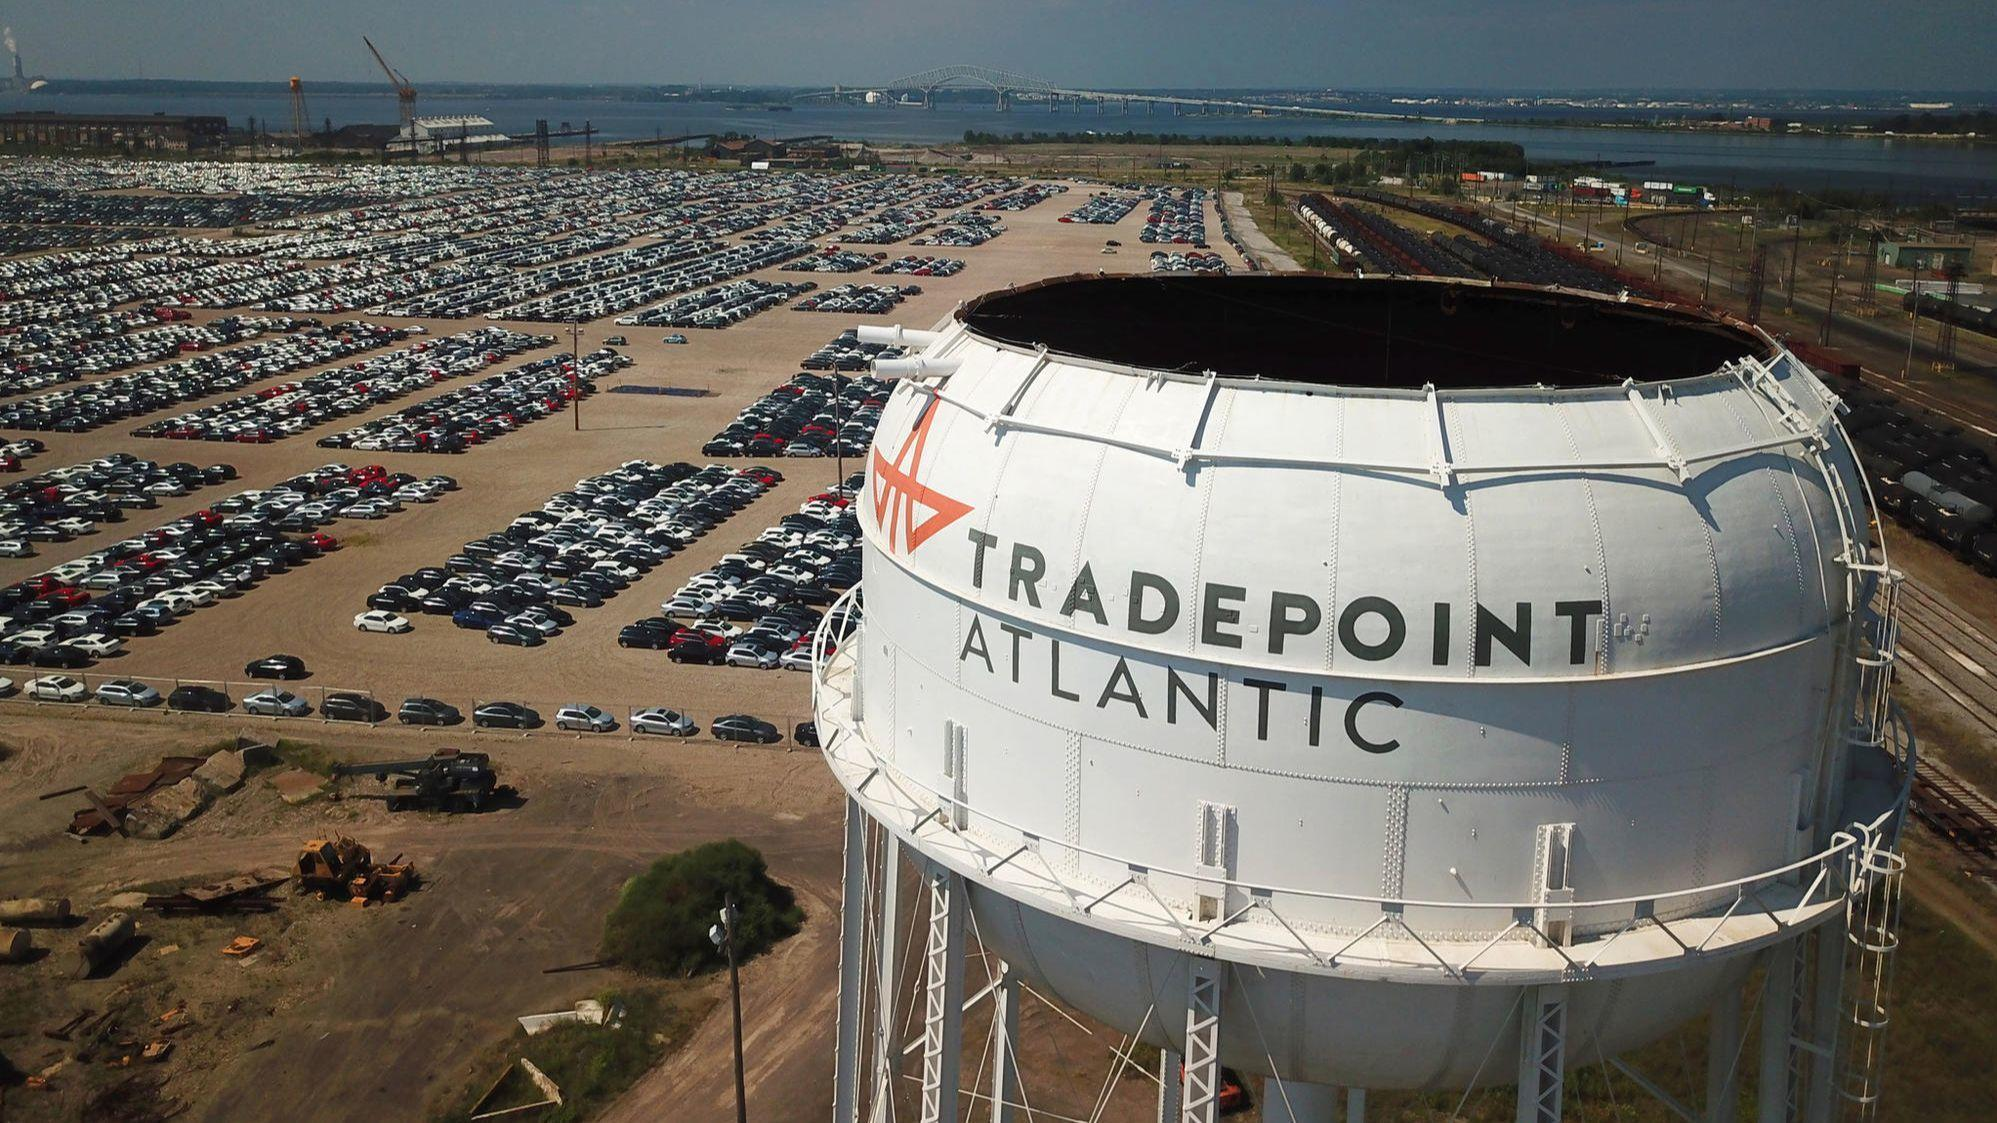 Support offered for $78 million Baltimore County deal to help Tradepoint Atlantic | Baltimore Sun